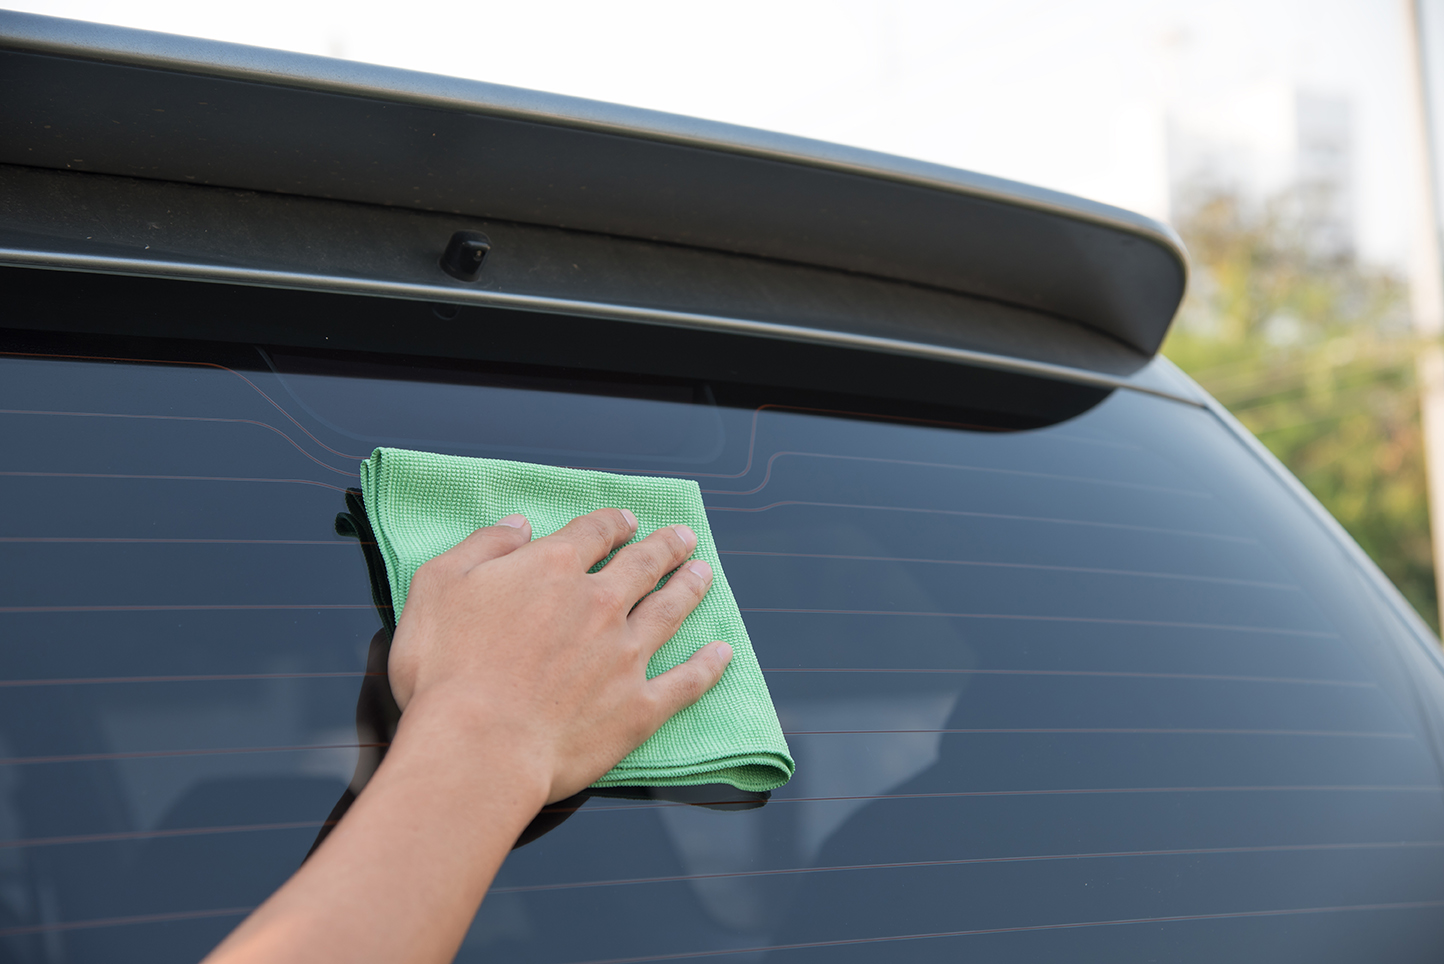 Bumper sticker design tips - Removing Bumper Stickers From Your Car Can Be A Pain Here Are Some Helpful Tips From Thompson Sales